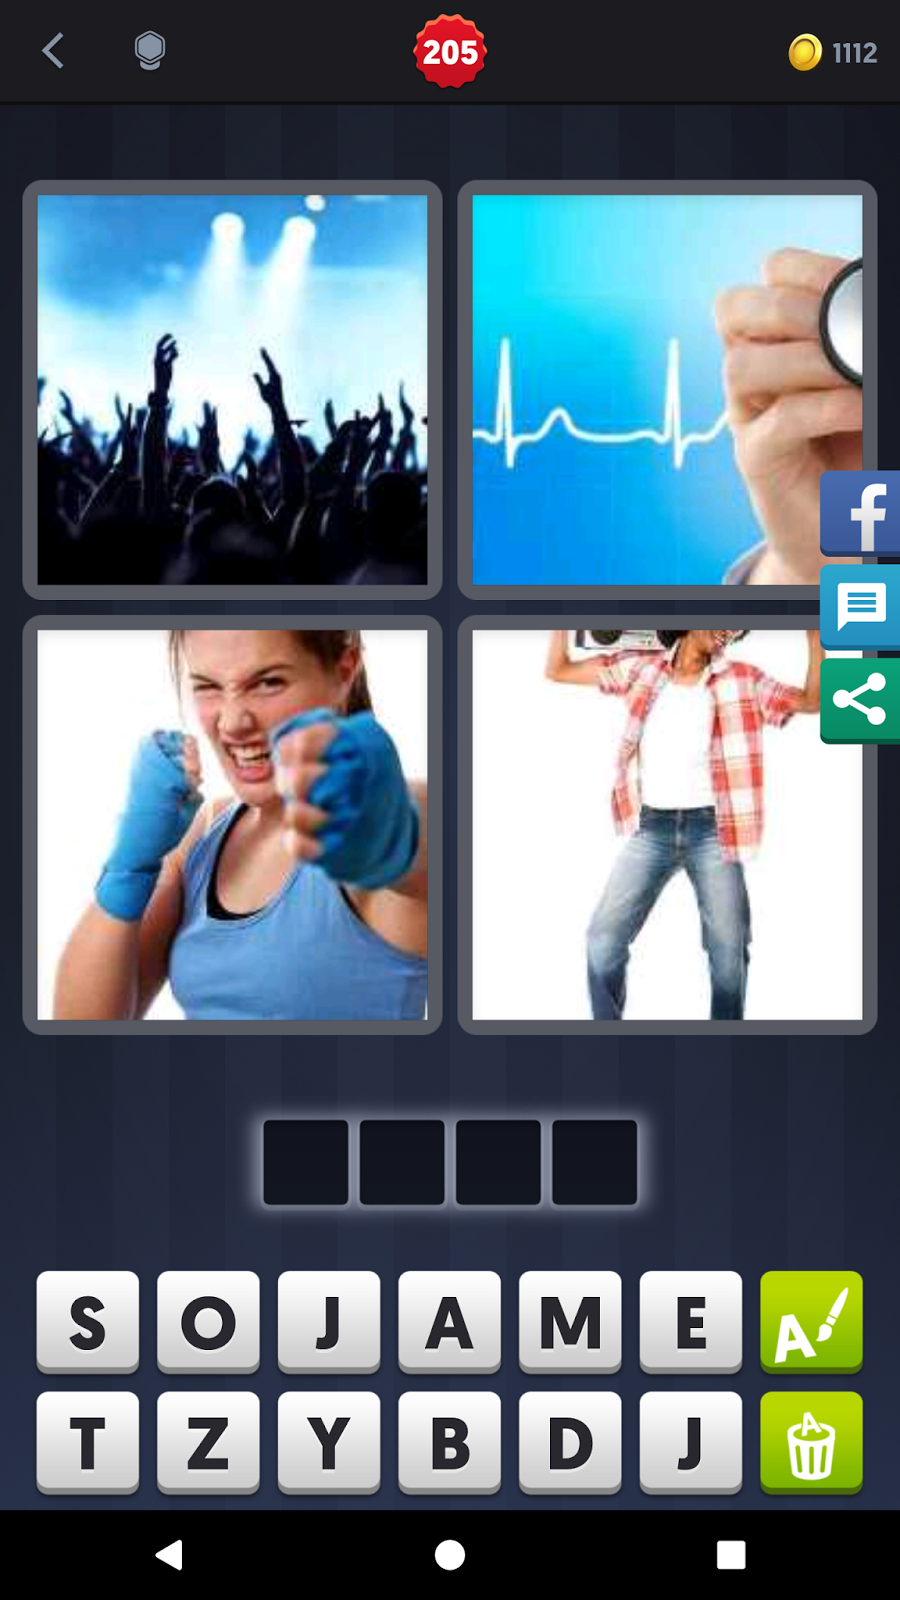 Solutions for 4 pics 1 word